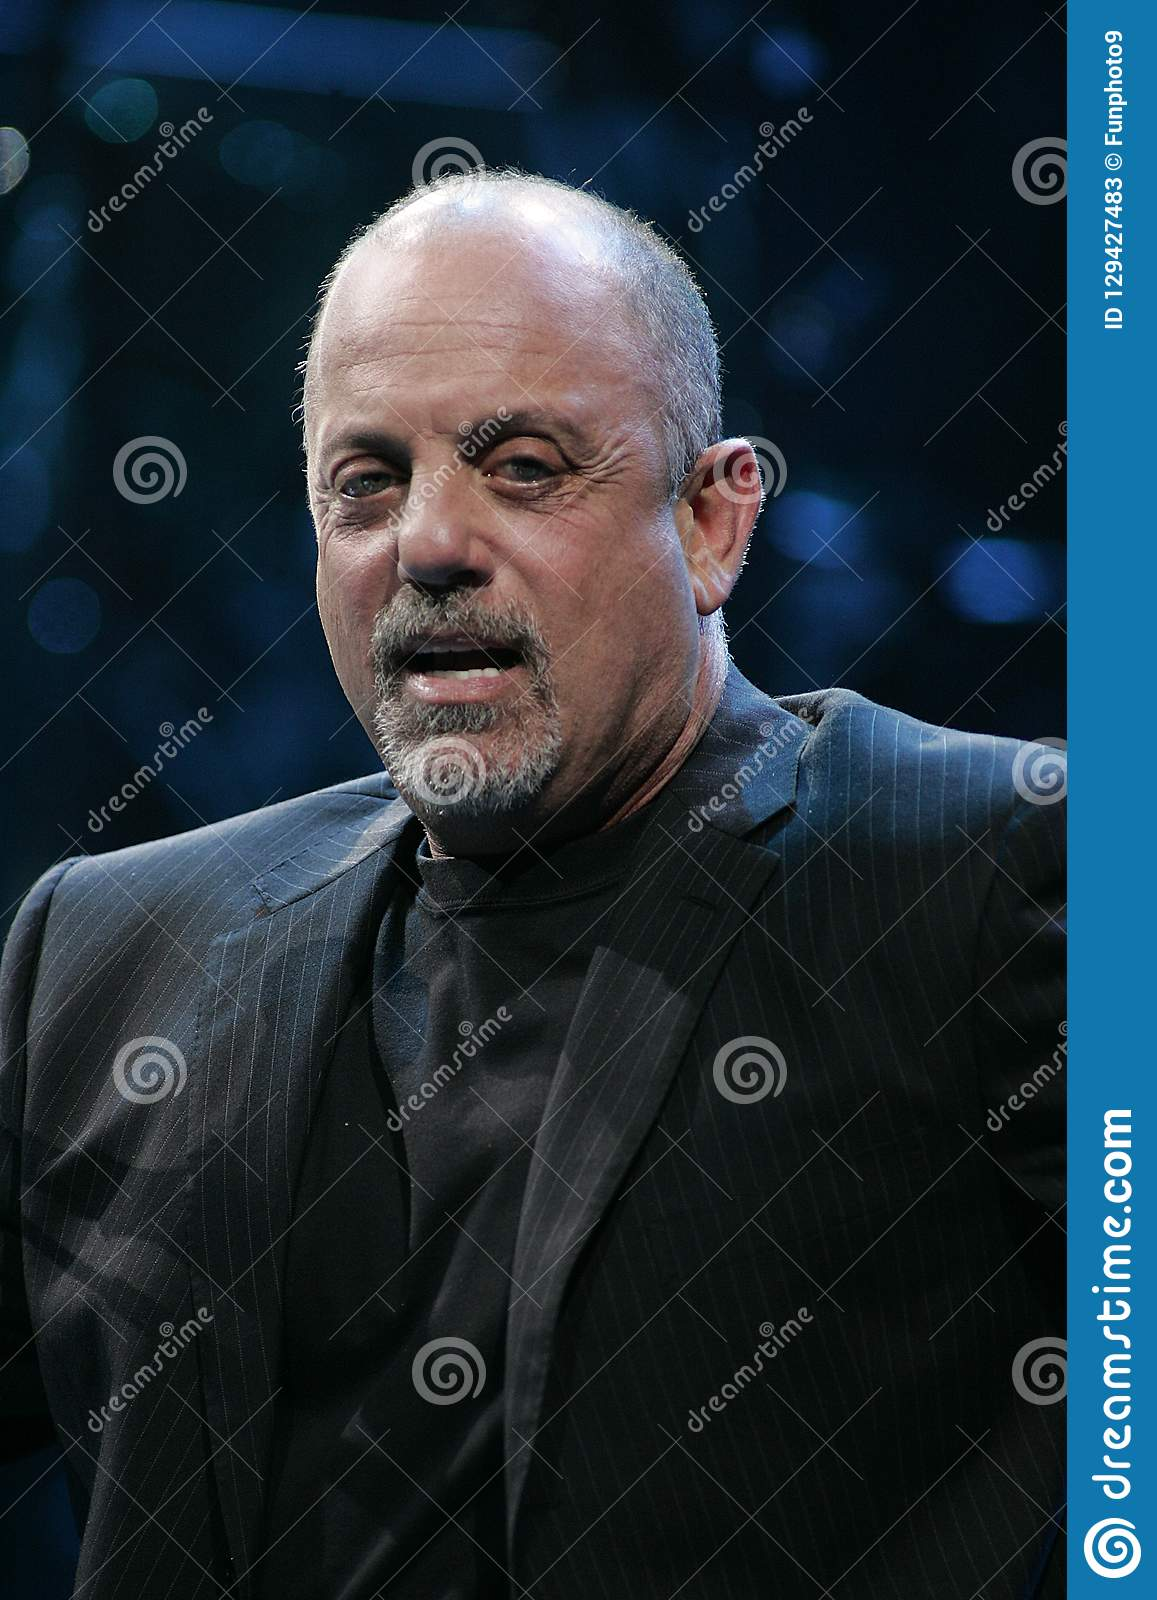 Billy Joel Performs en concierto